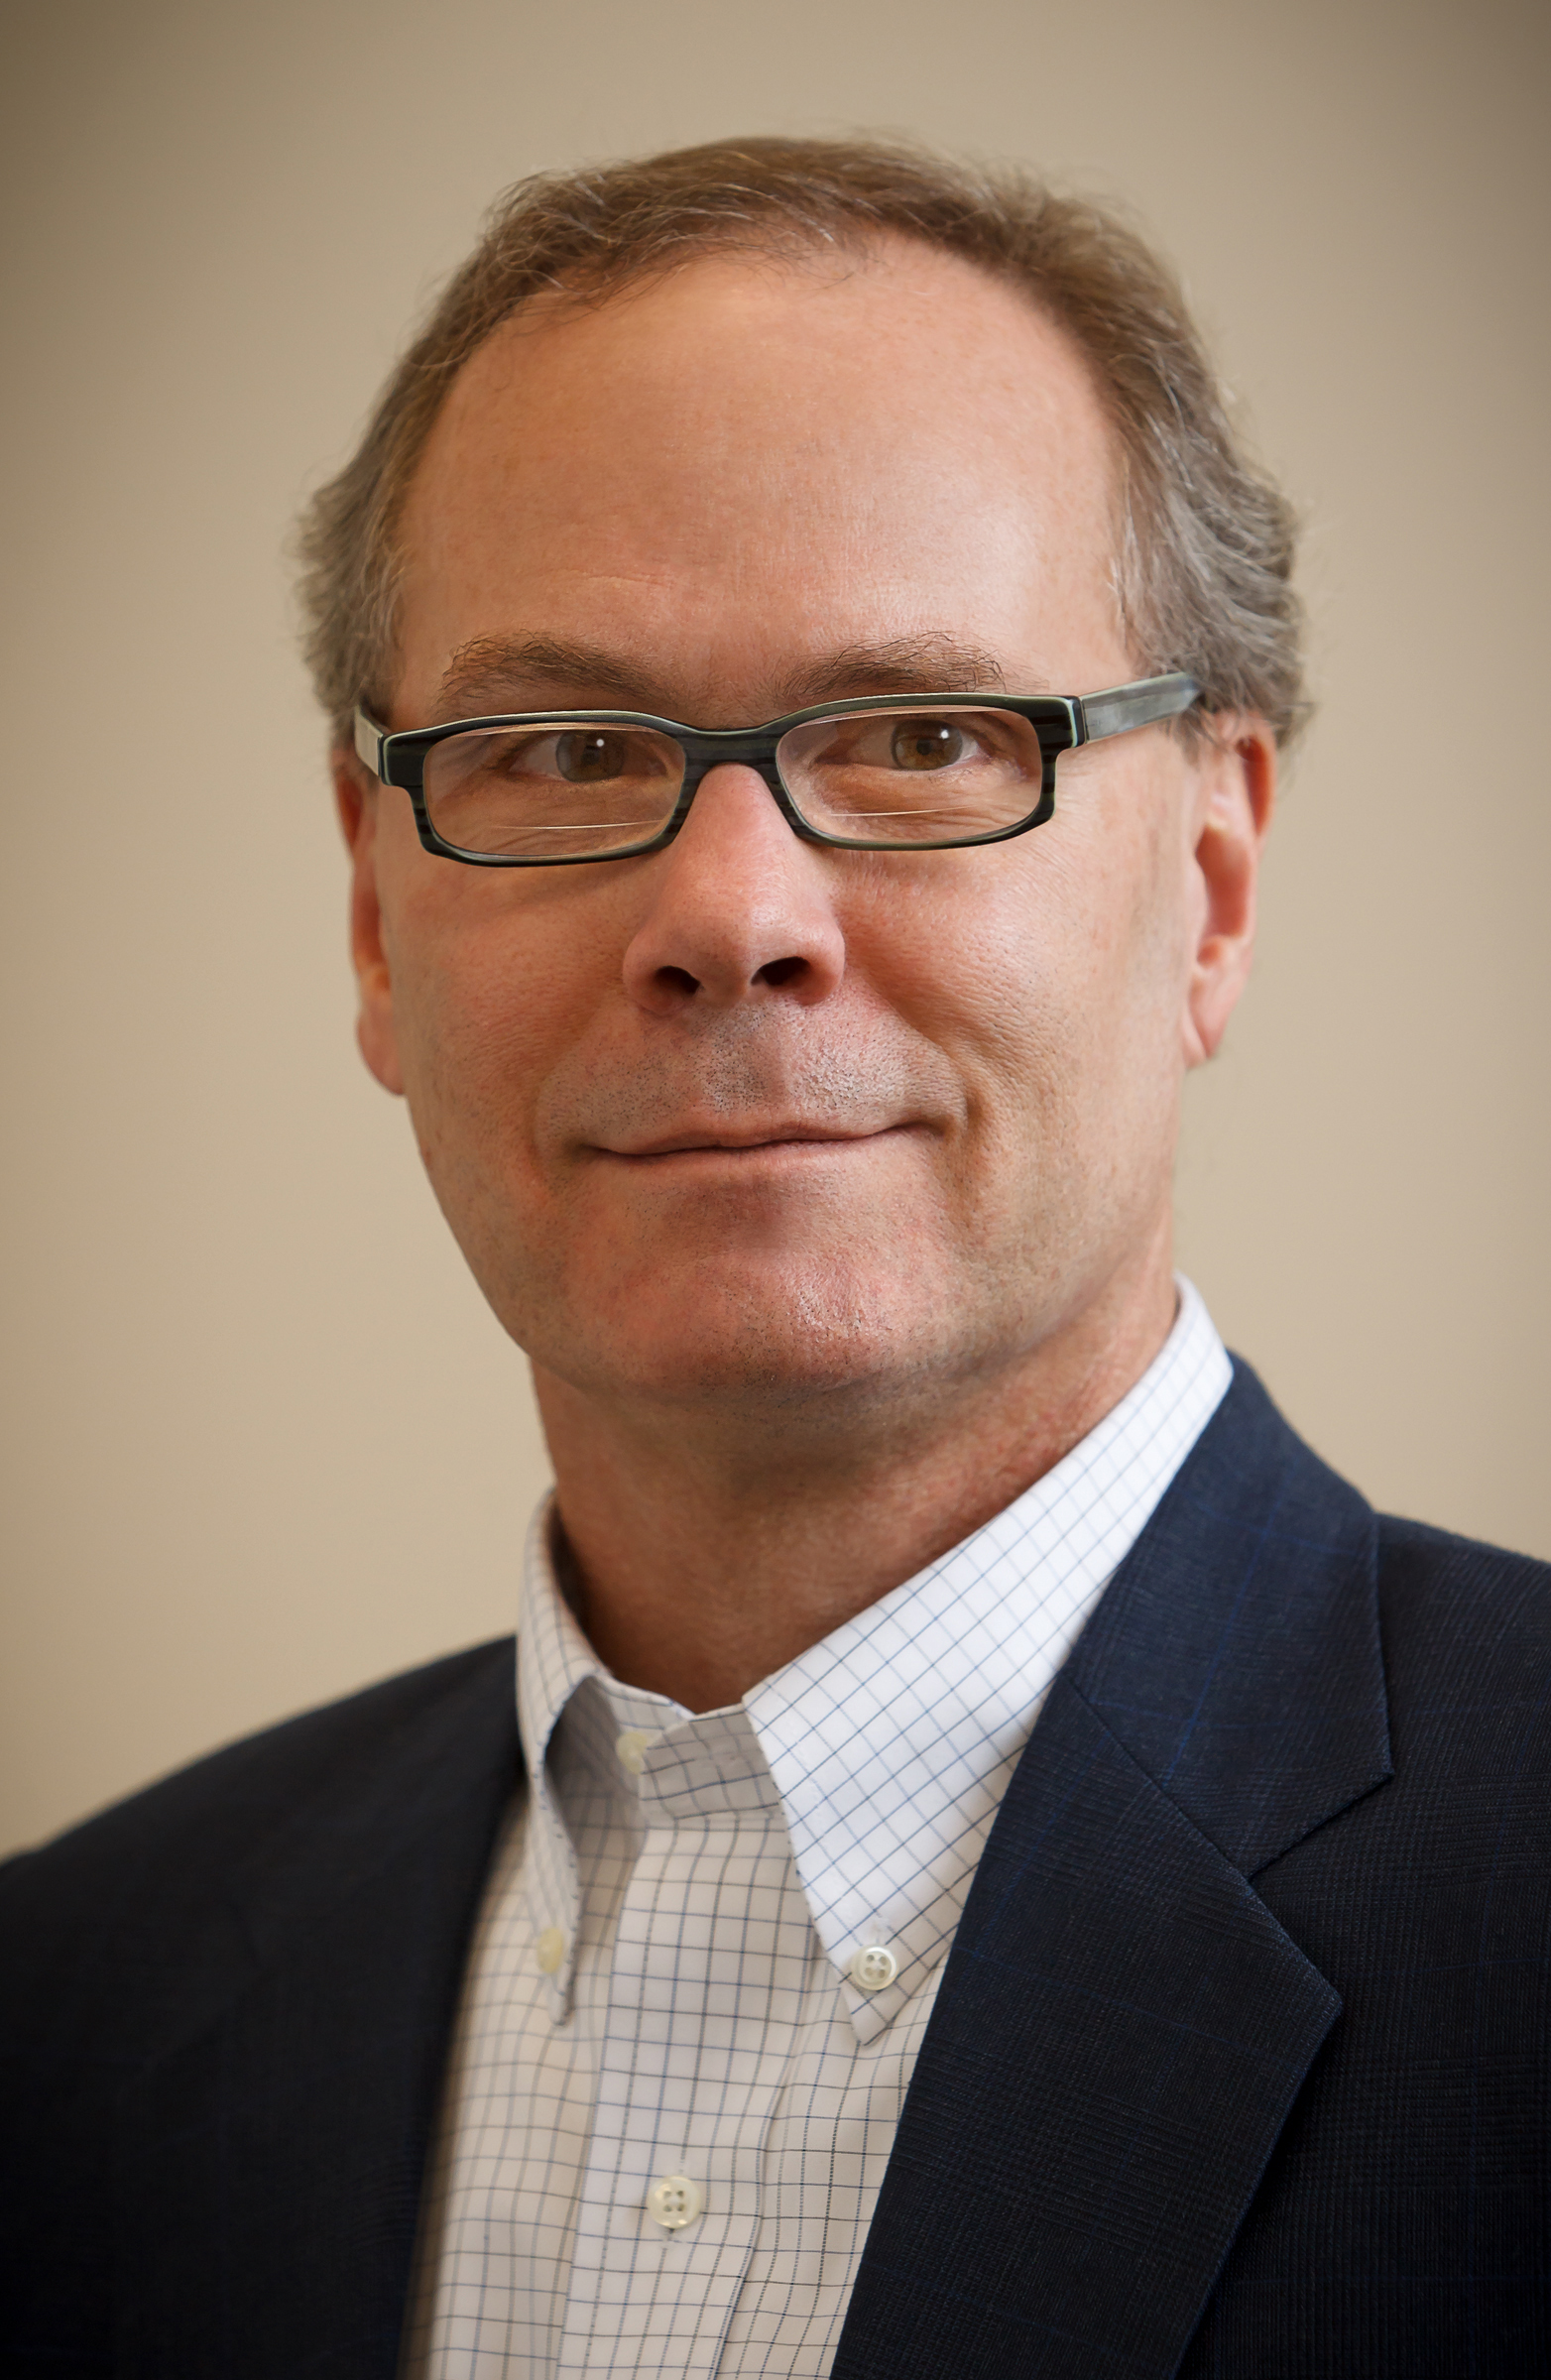 Martin Plaehn, Chairman and Chief Executive Officer, Control4 (Photo: Business Wire)